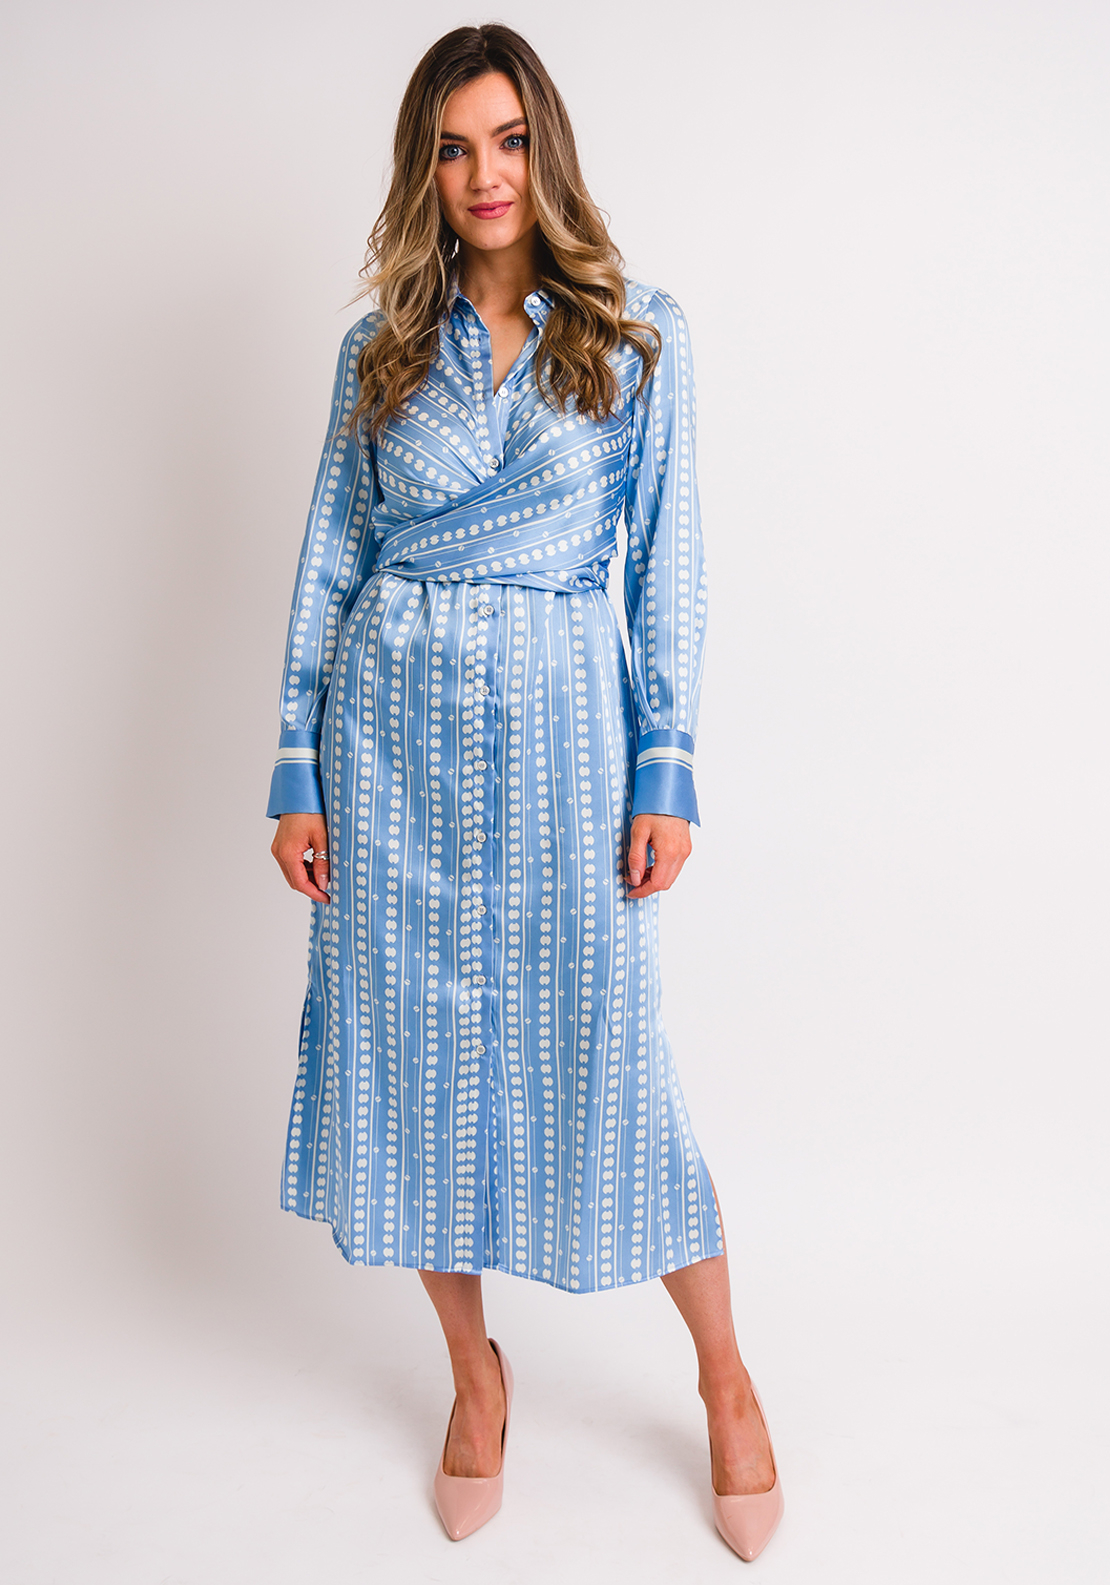 Marella Pineta Printed Tie Waist Midi Dress, Pale Blue